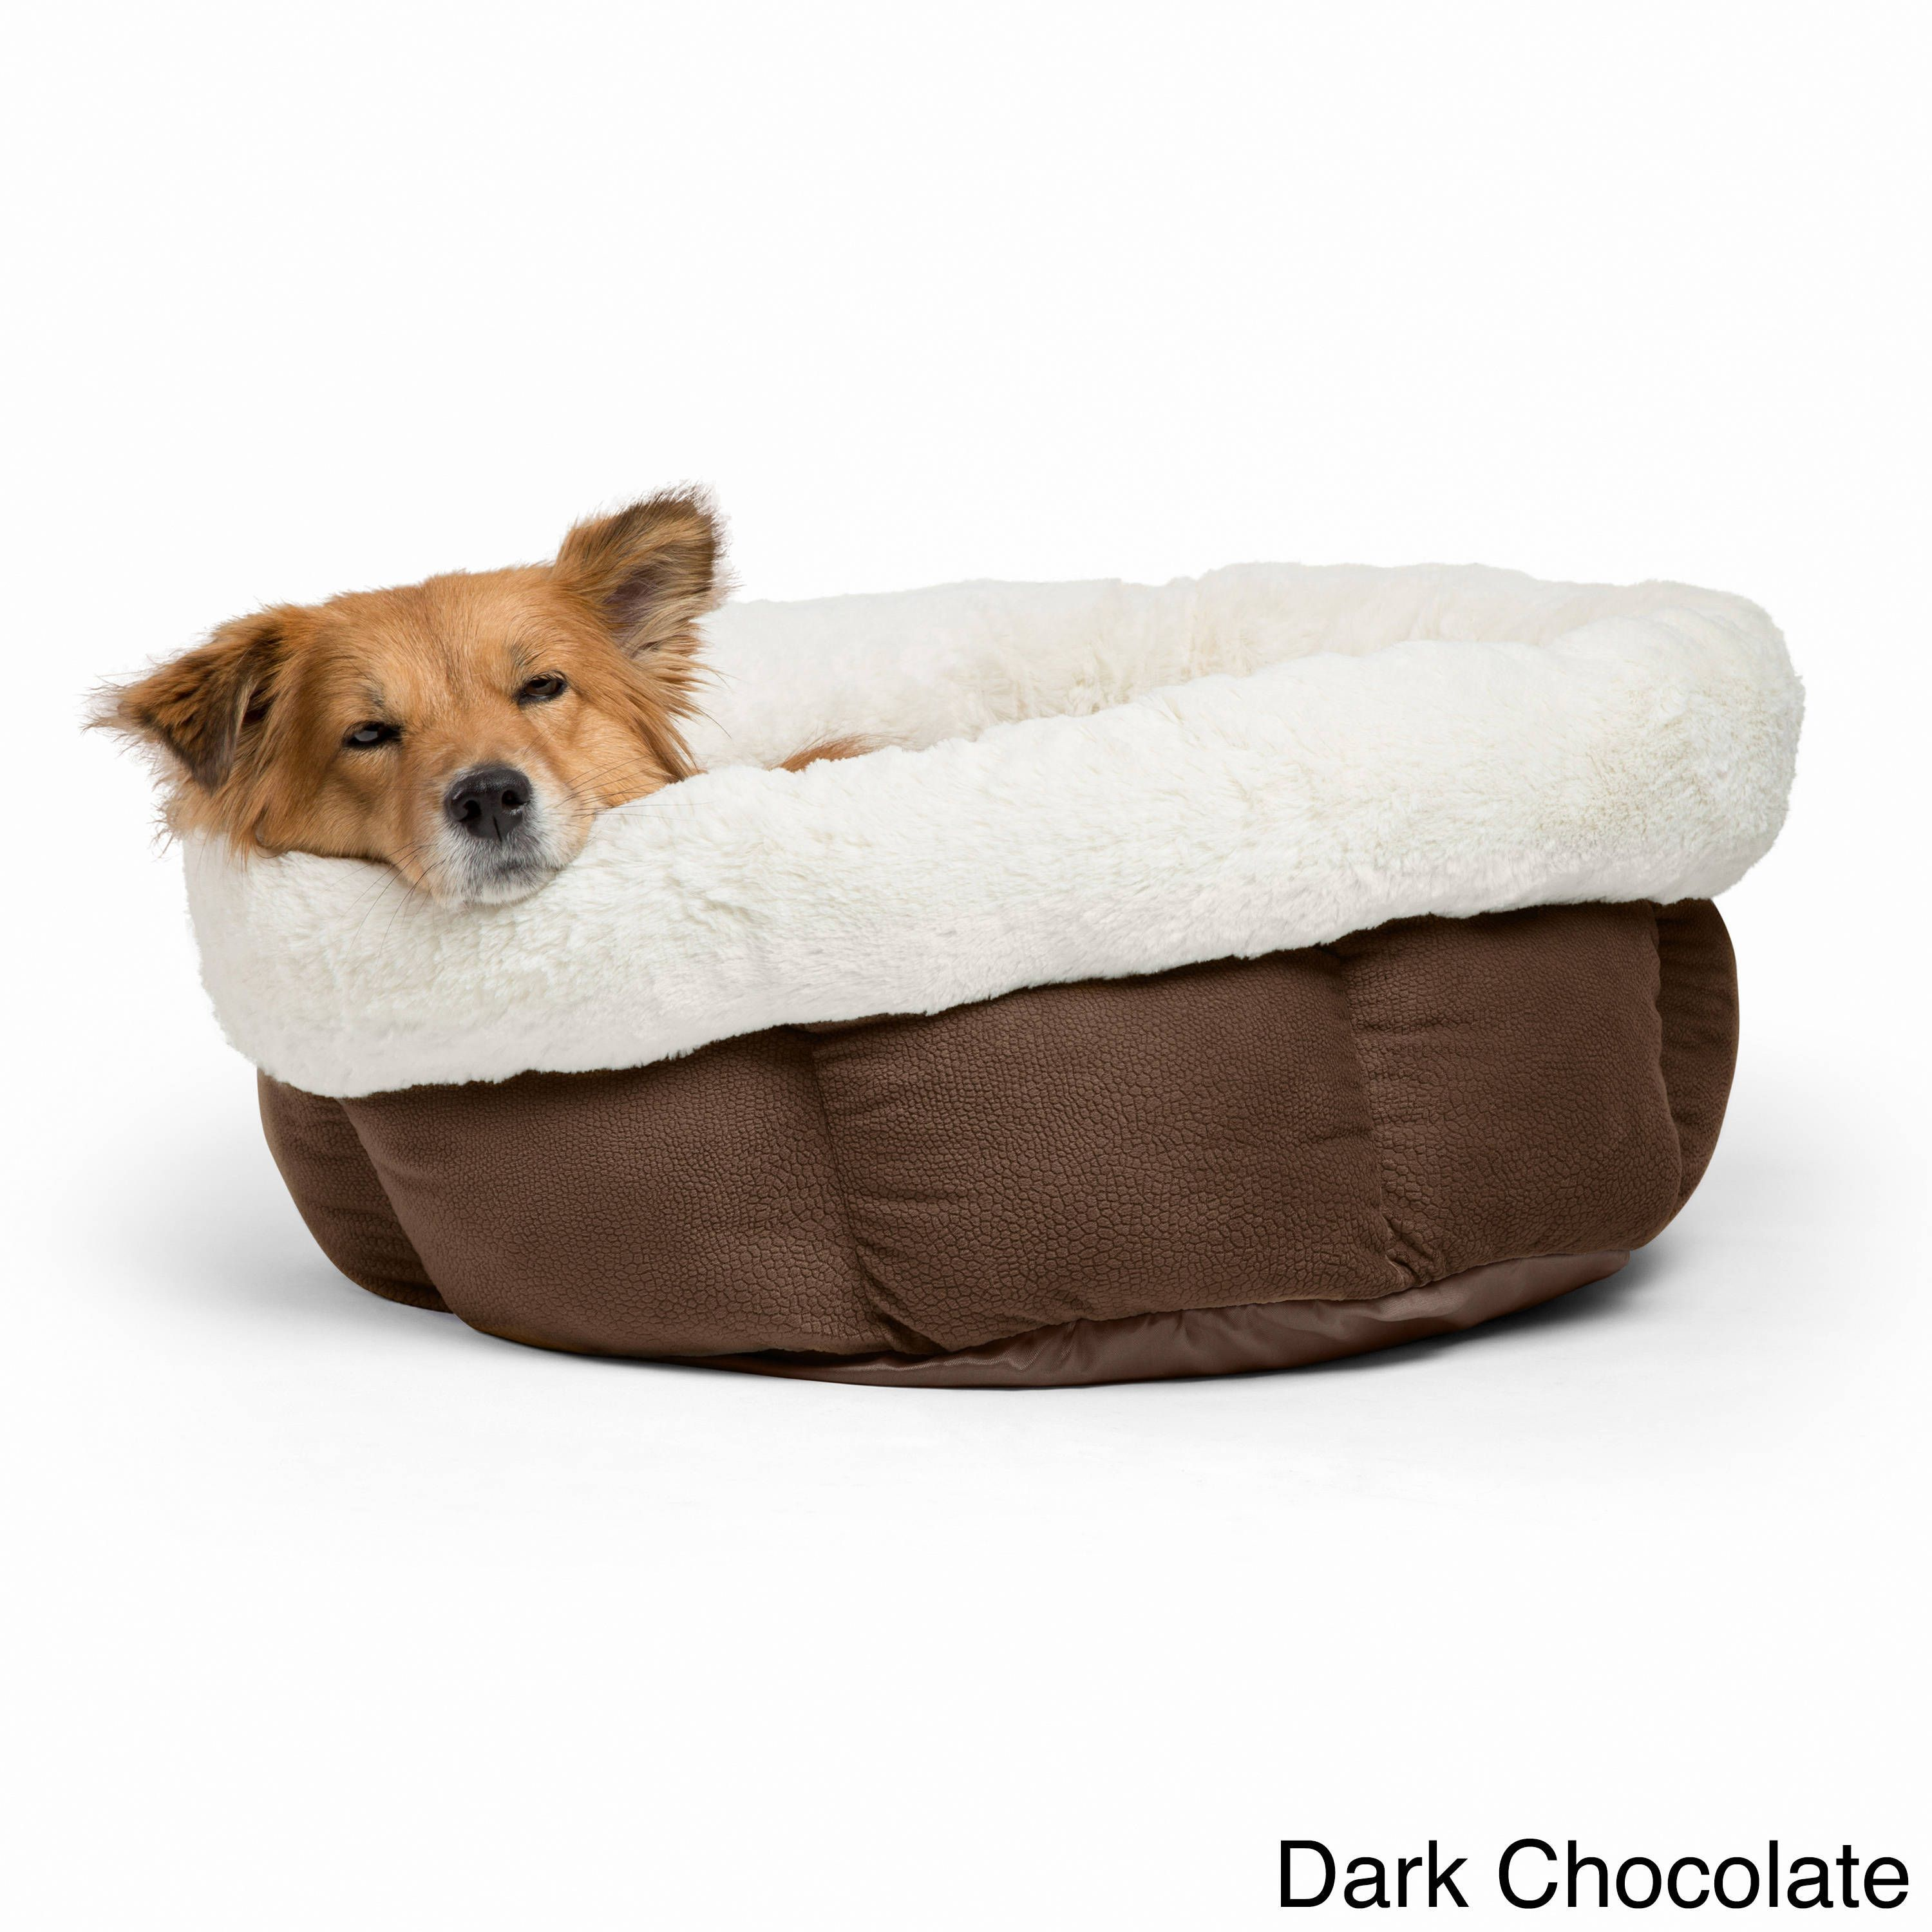 Best Friends By Sheri Jumbo Cuddle Cup Ilan Dog Bed Dog Mattresses Dog Bed Luxury Dog Bed